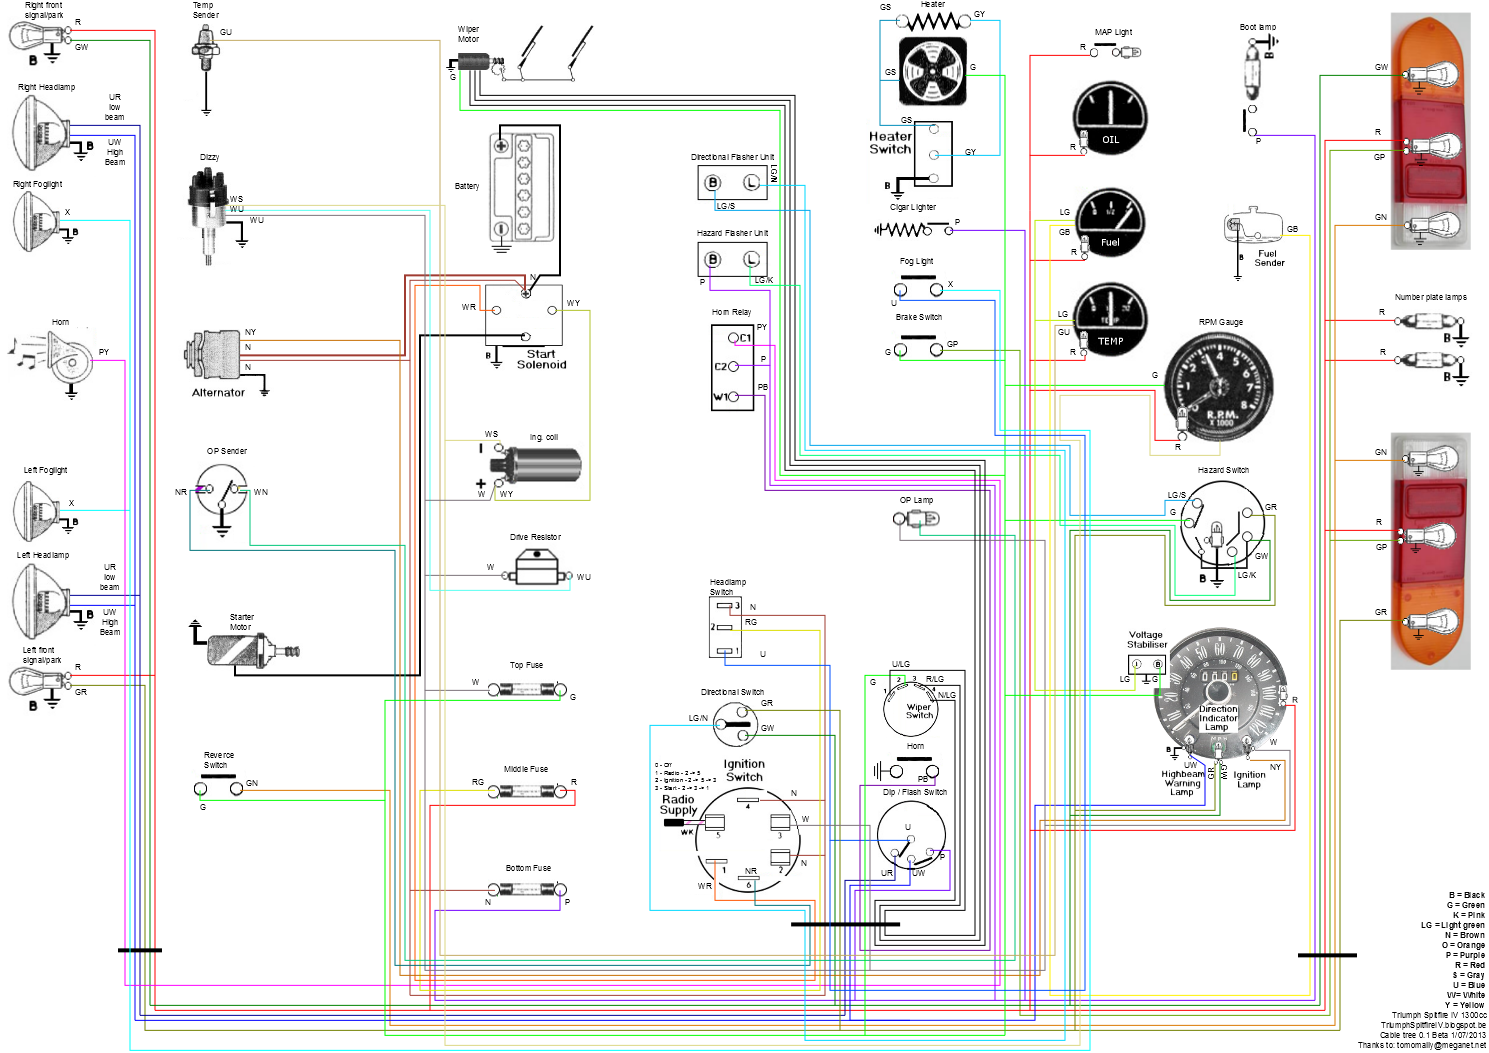 spitfire iv wiring diagram spitfire mkiv wiring diagram how to library the triumph experience 73 triumph spitfire 1500 wiring harness at edmiracle.co